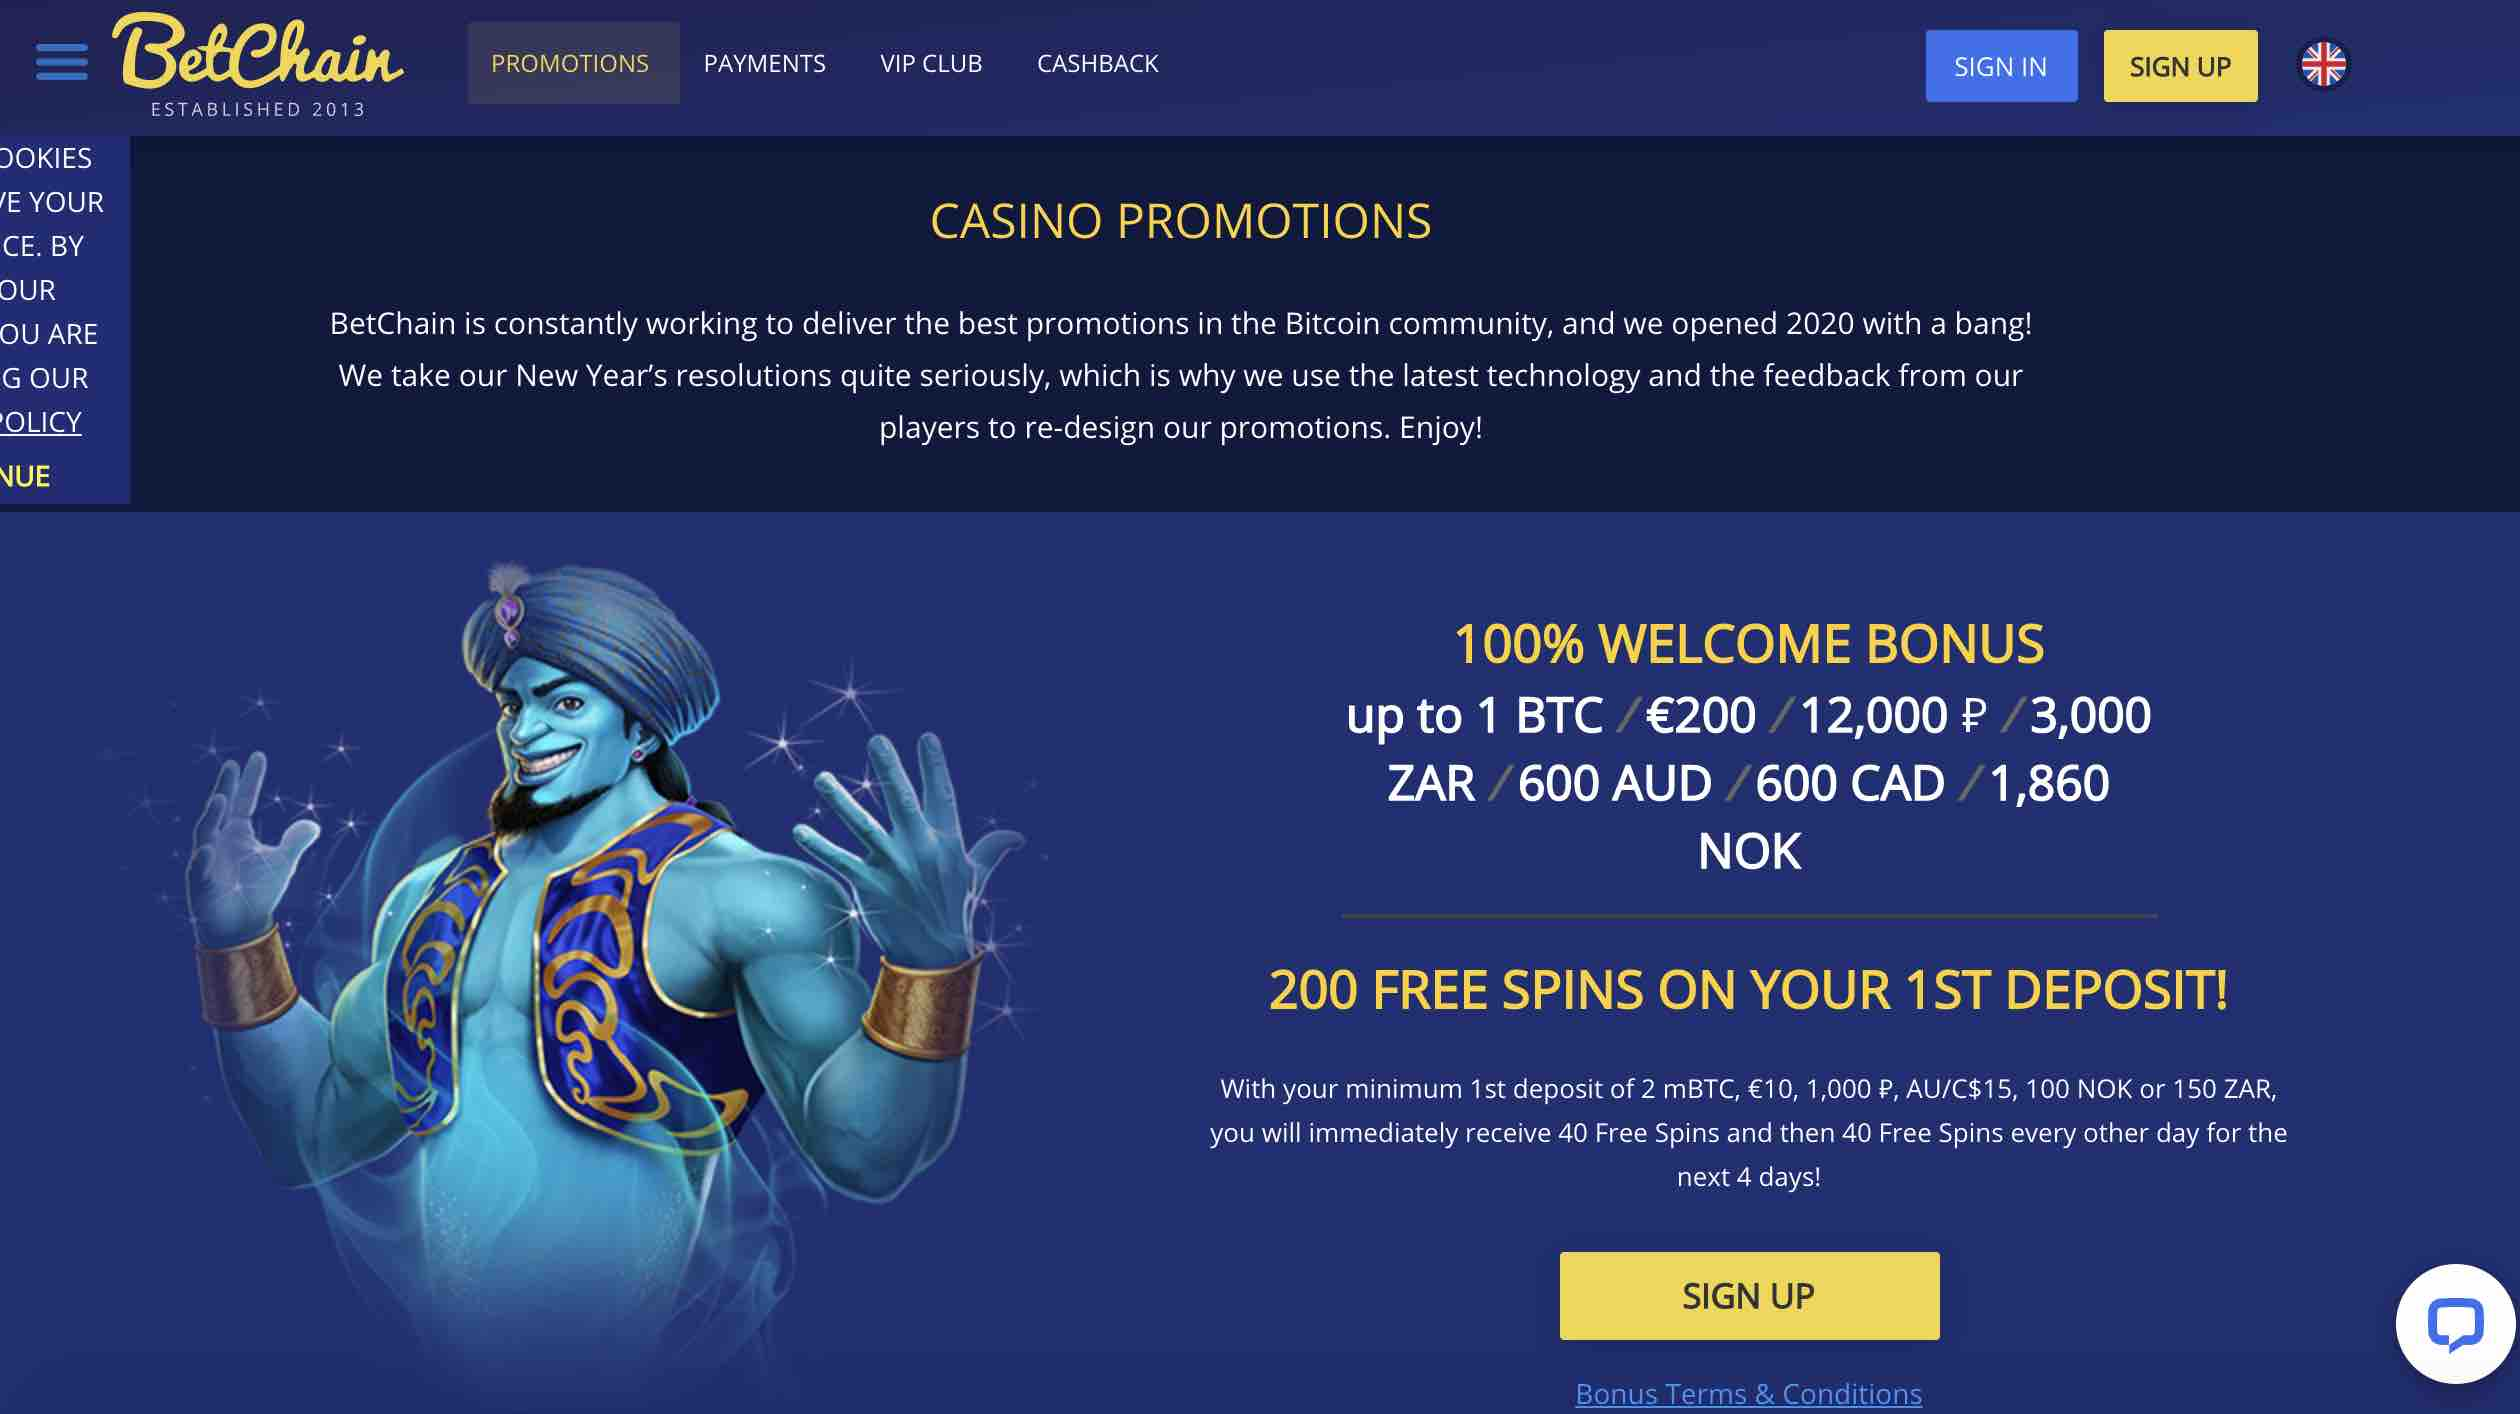 Promotions at BetChain Casino